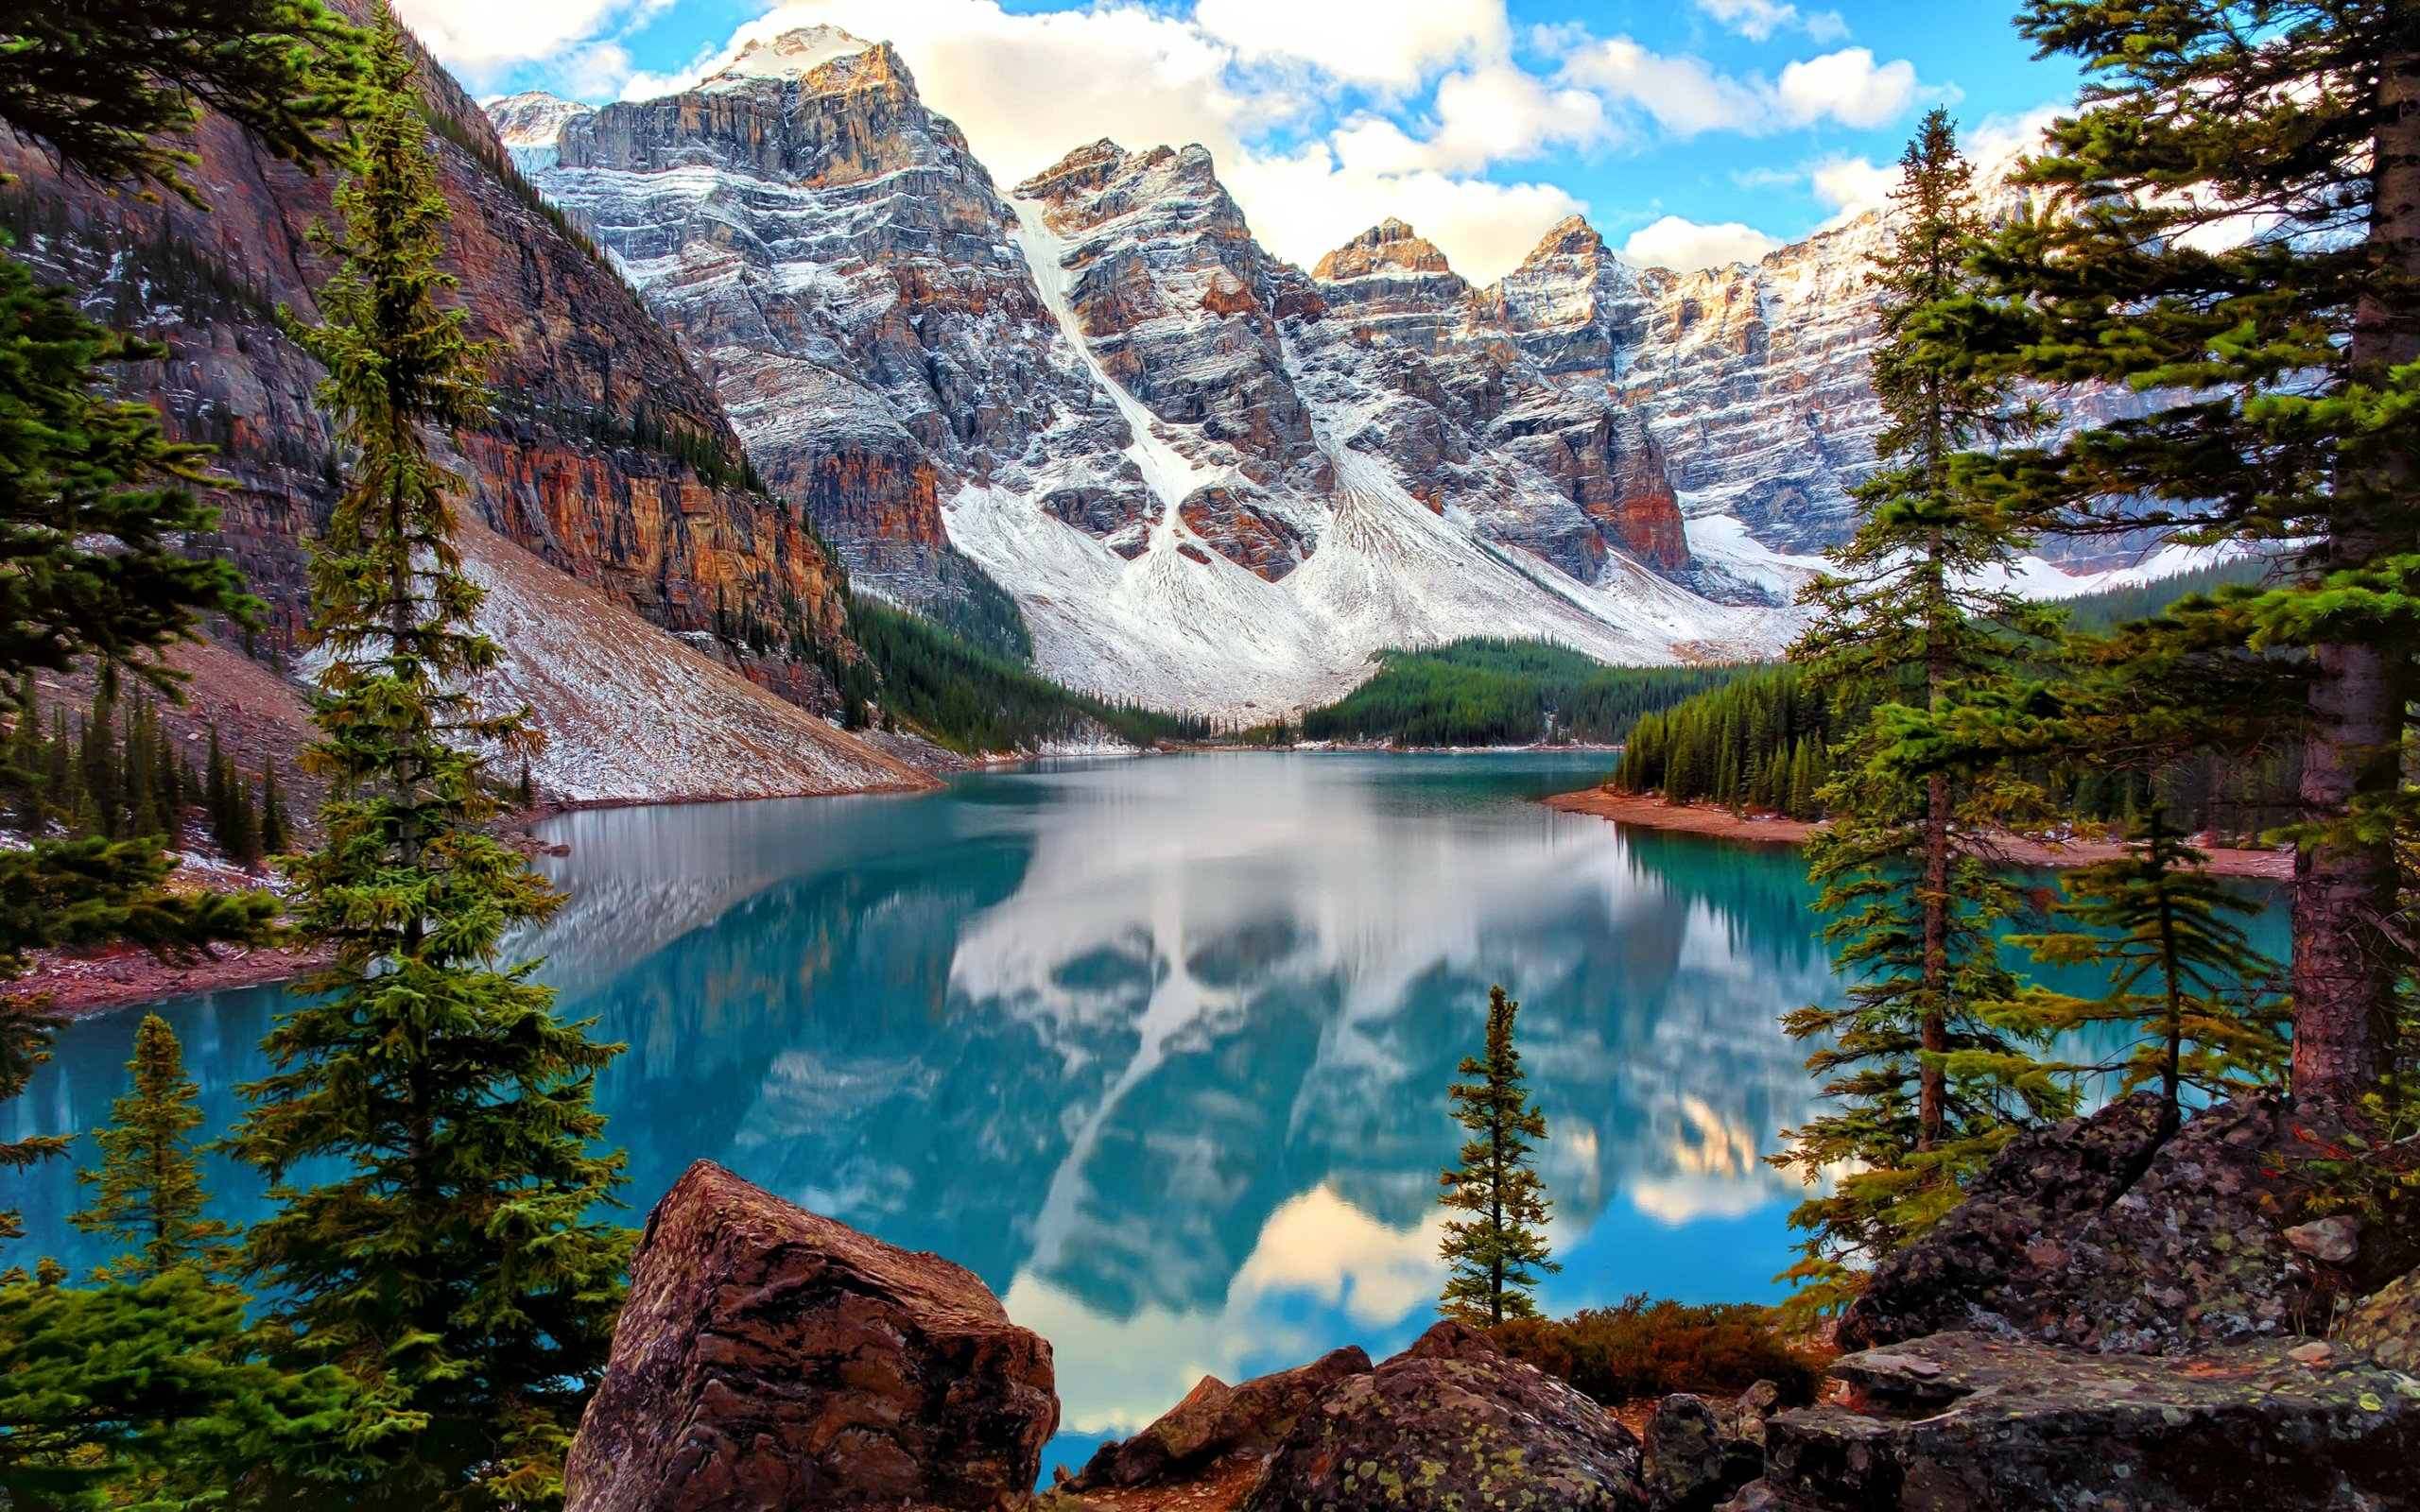 34 moraine lake wallpaper 1600x1200 on wallpapersafari - Desktop wallpaper 1600x1200 ...